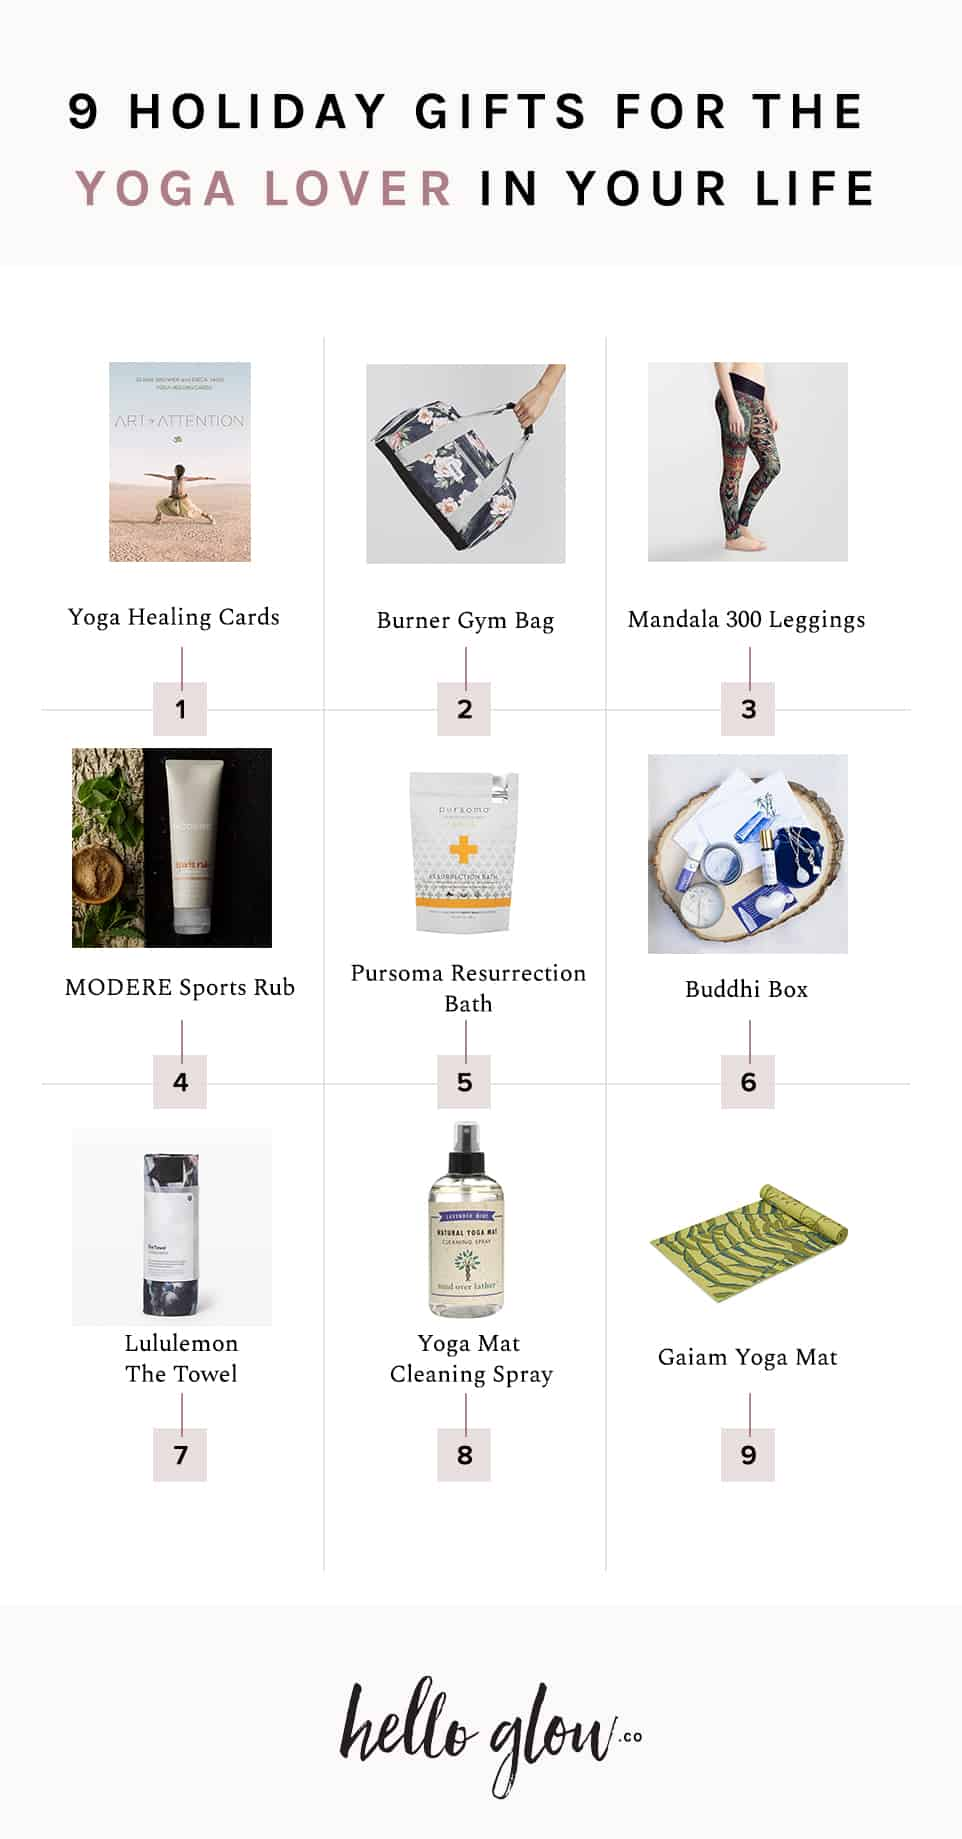 9 Holiday Gifts for the Yoga Lover in Your Life - HelloGlow.co